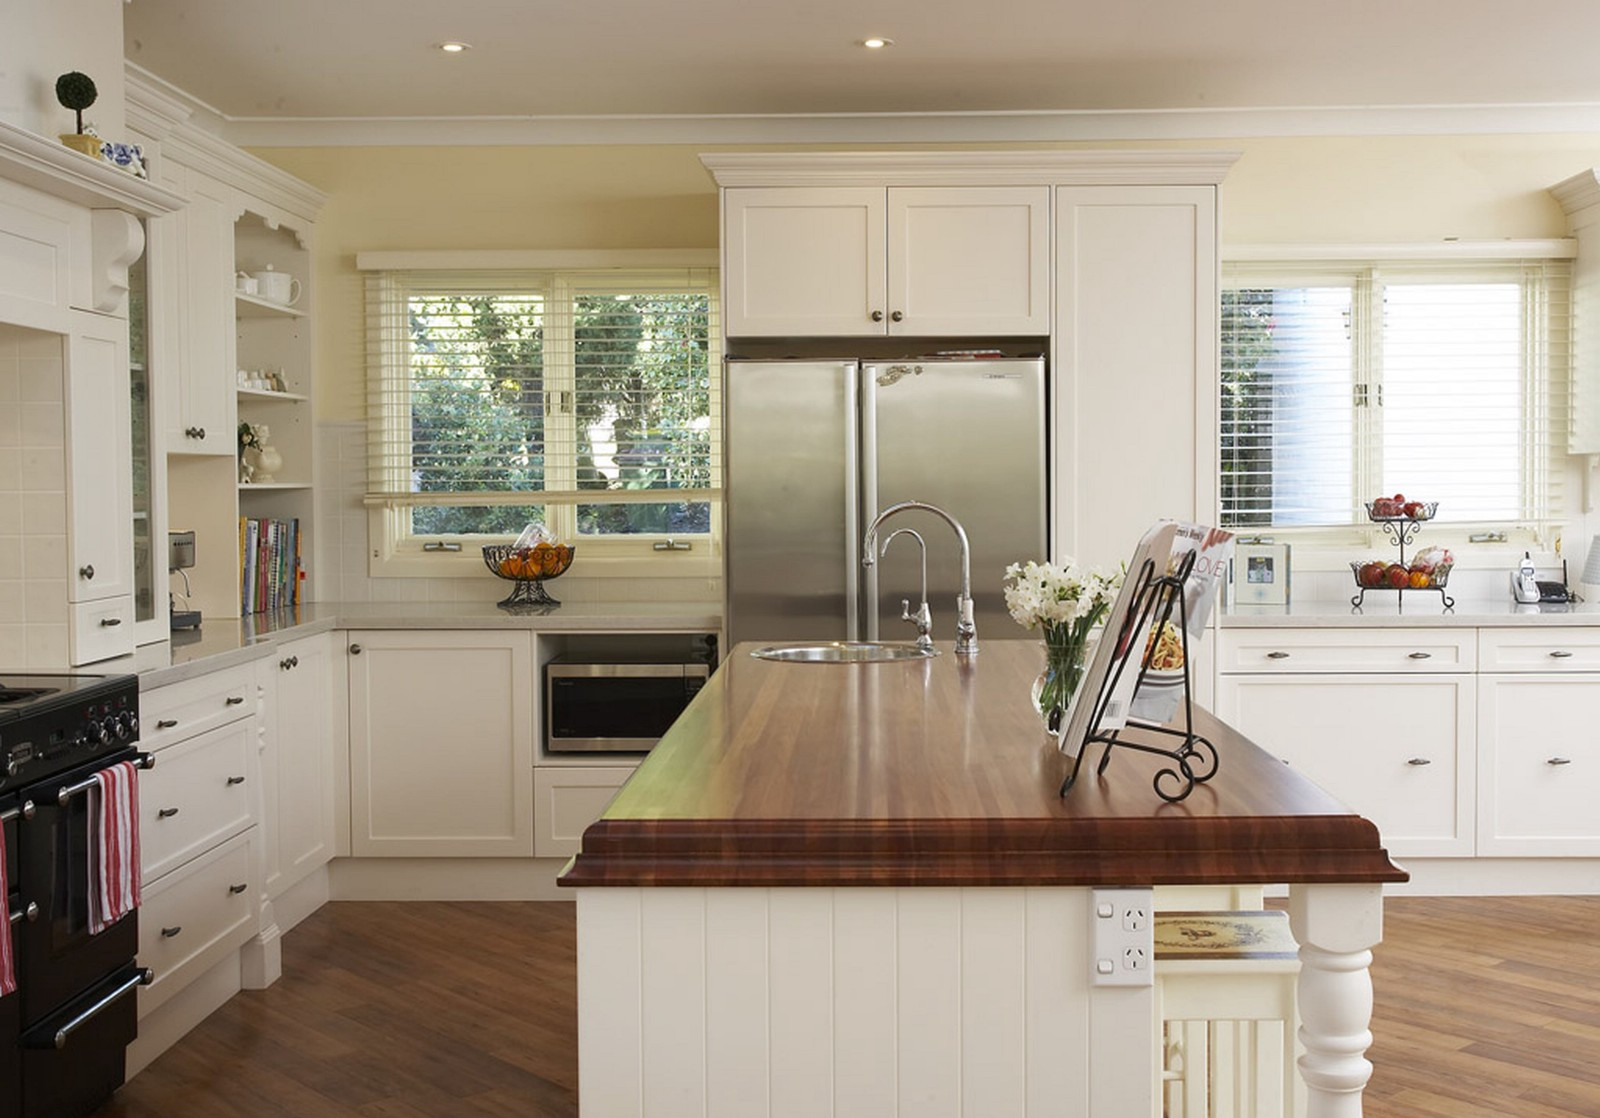 design your own kitchen uk. tips design your own kitchen layout